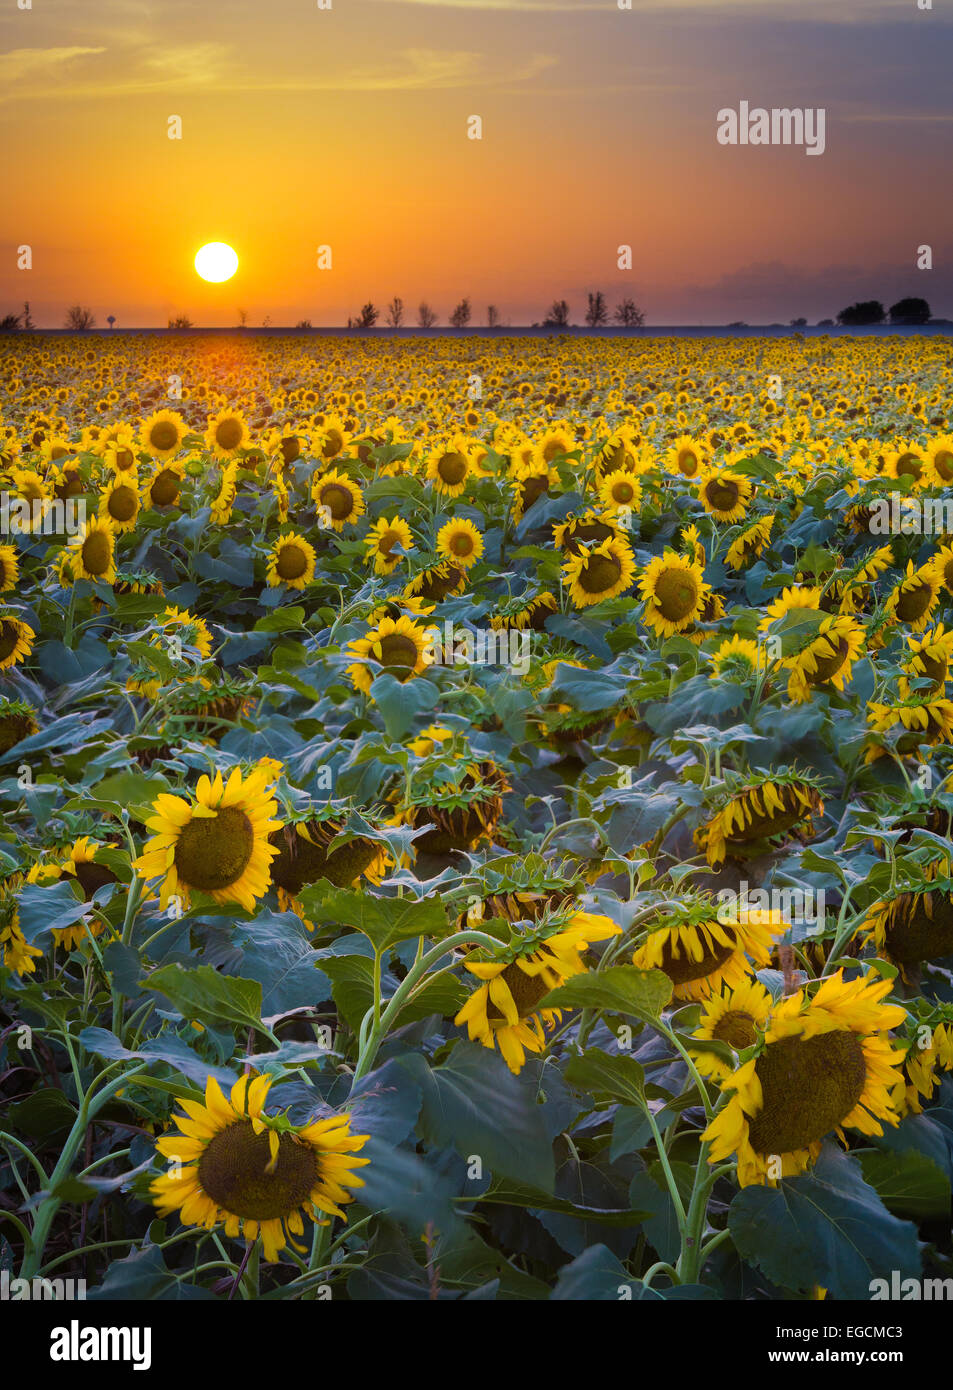 Sunflowers in Waxahachie in northern Texas - Stock Image